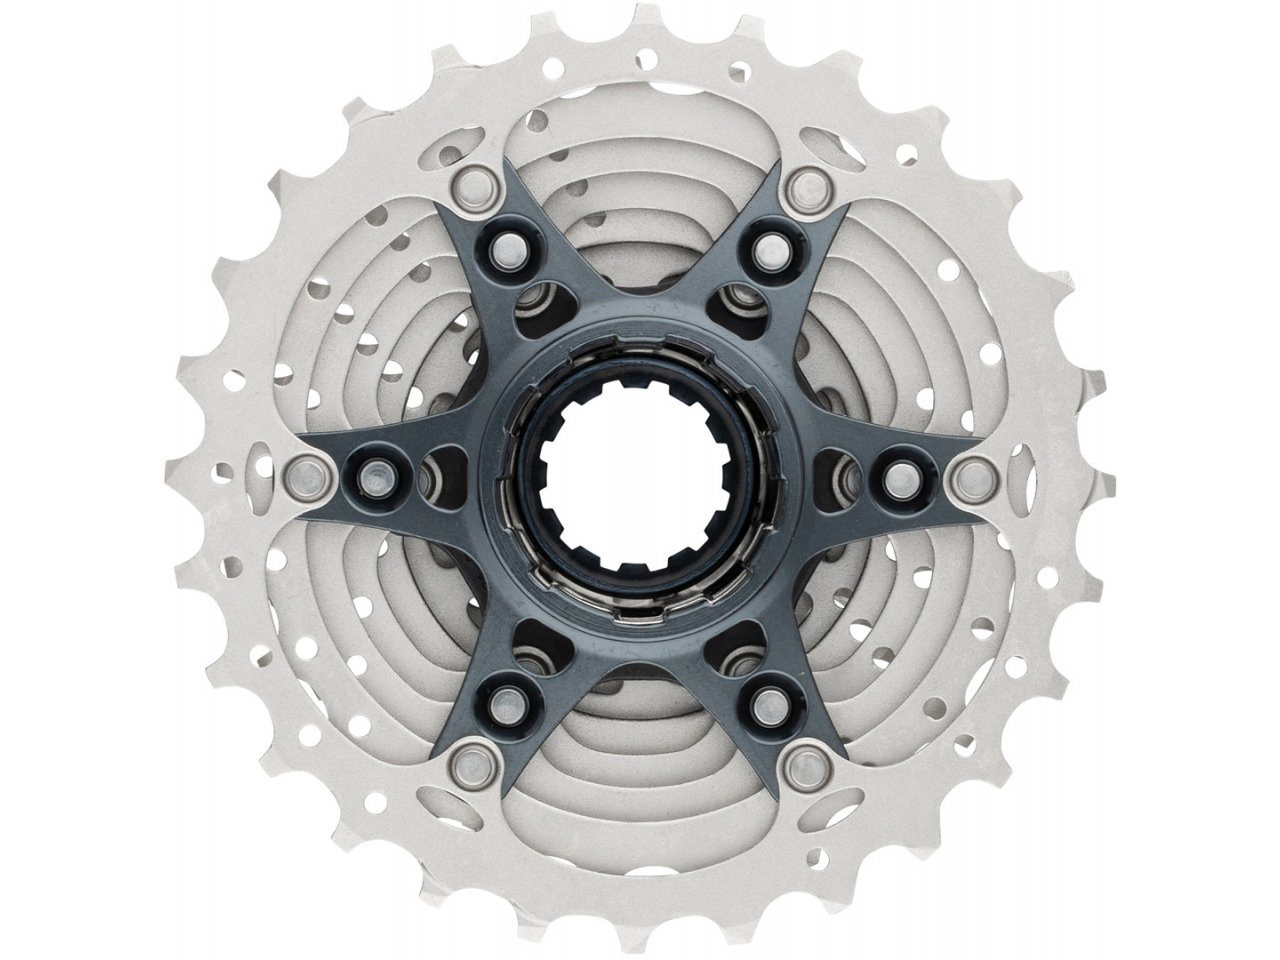 SHIMANO ULTEGRA 6800 11-SPEED NICKEL PLATED 11-28T ROAD BICYCLE CASSETTE